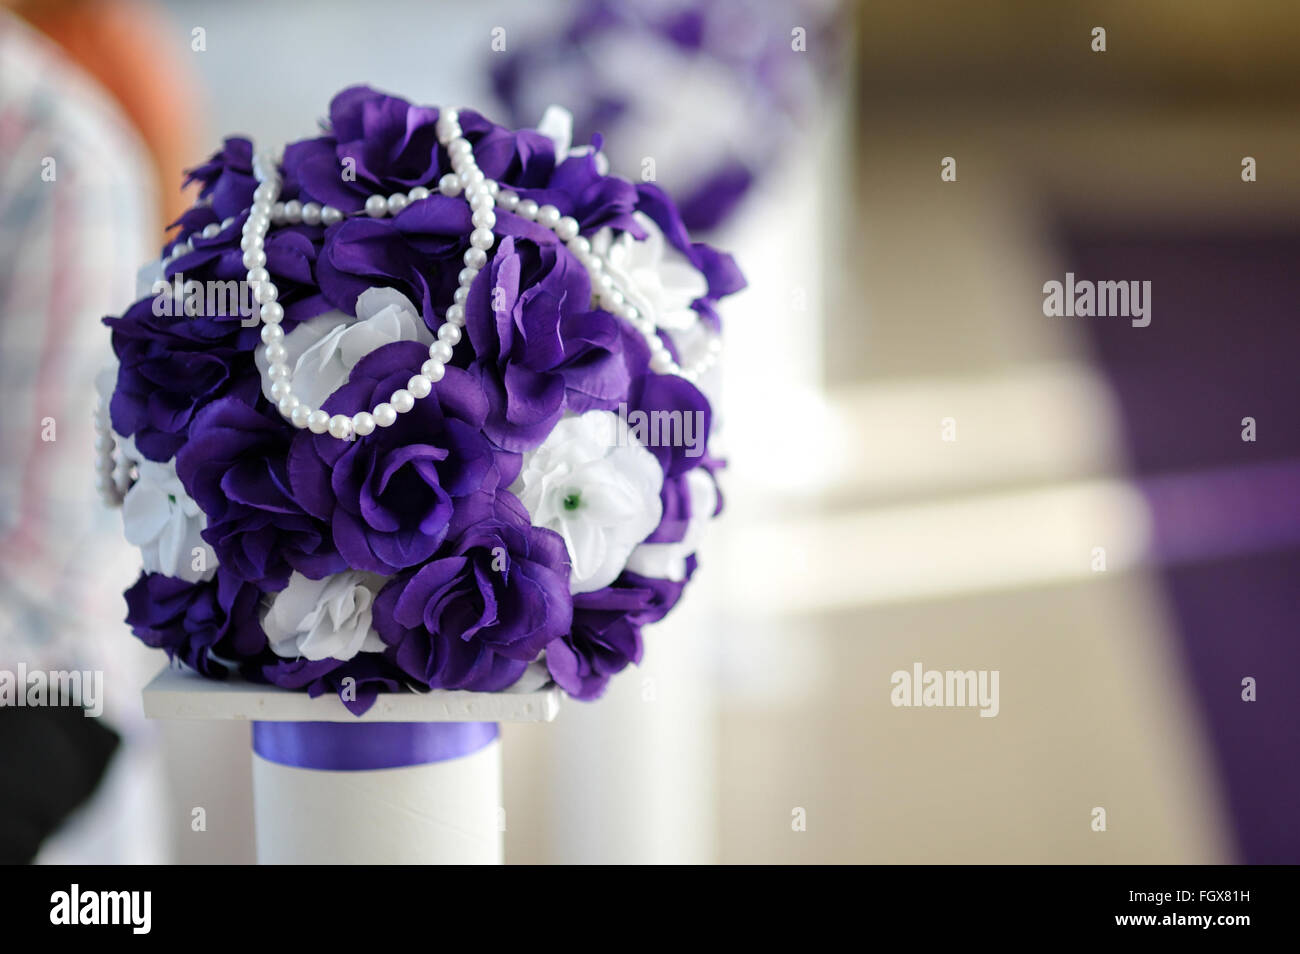 Beautiful wedding bouquet of purple and white flowers stock photo beautiful wedding bouquet of purple and white flowers izmirmasajfo